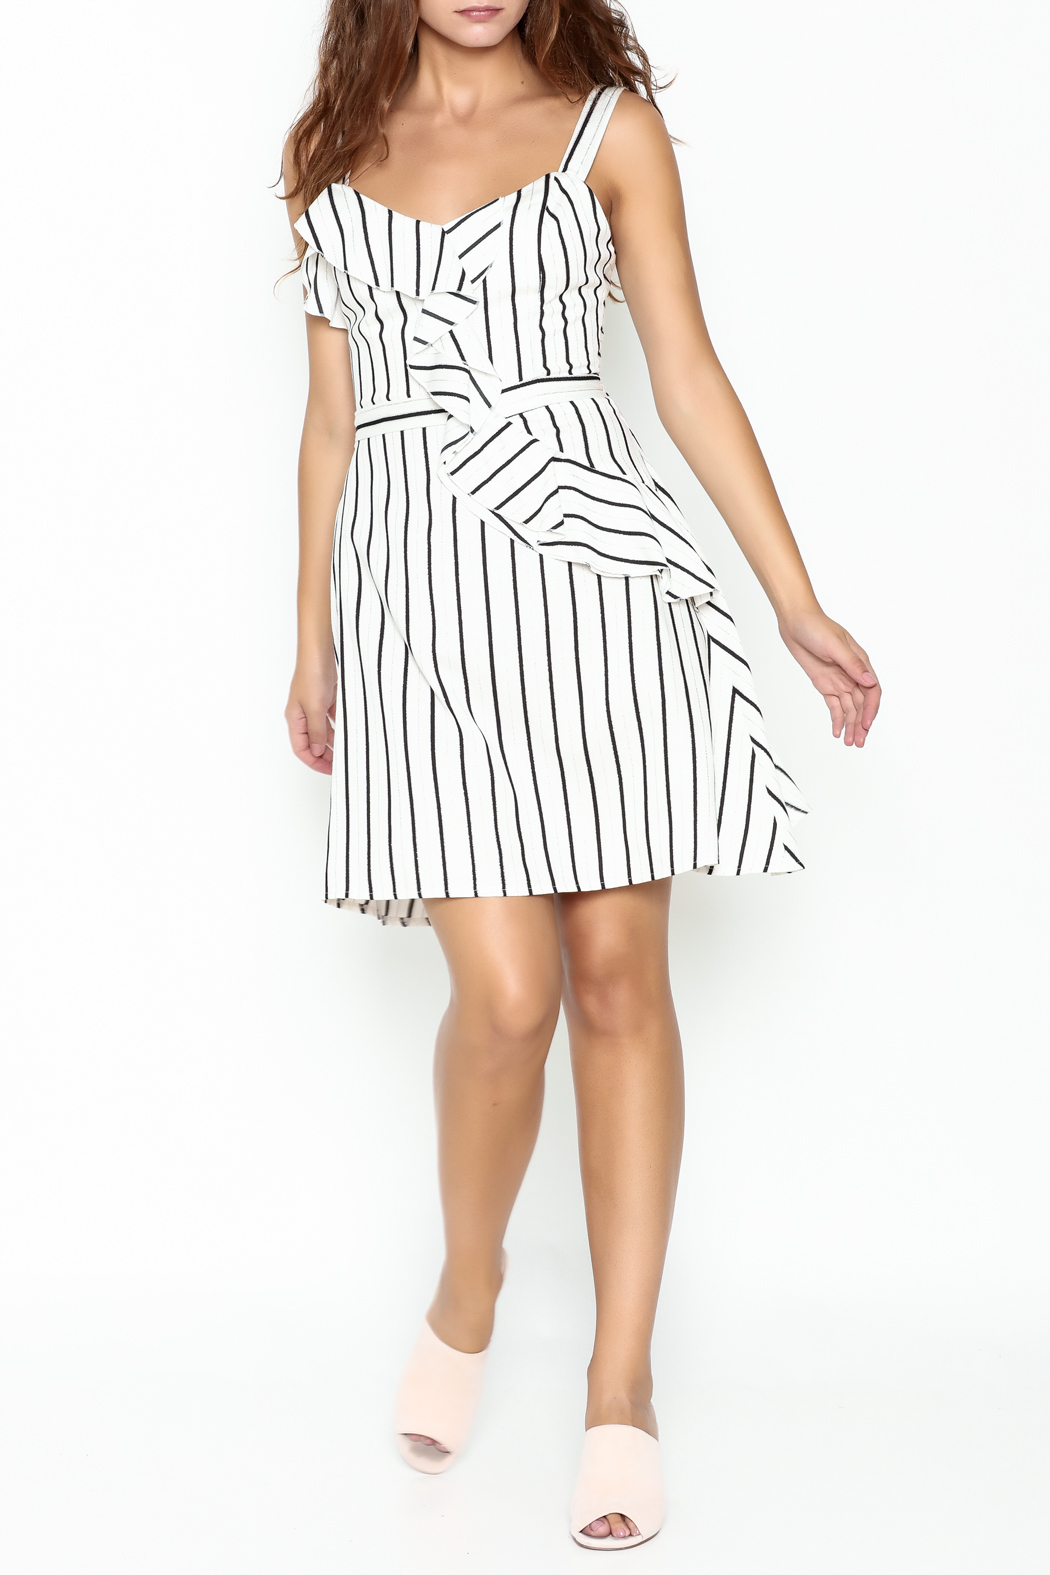 Marvy Fashion Striped Dress - Side Cropped Image